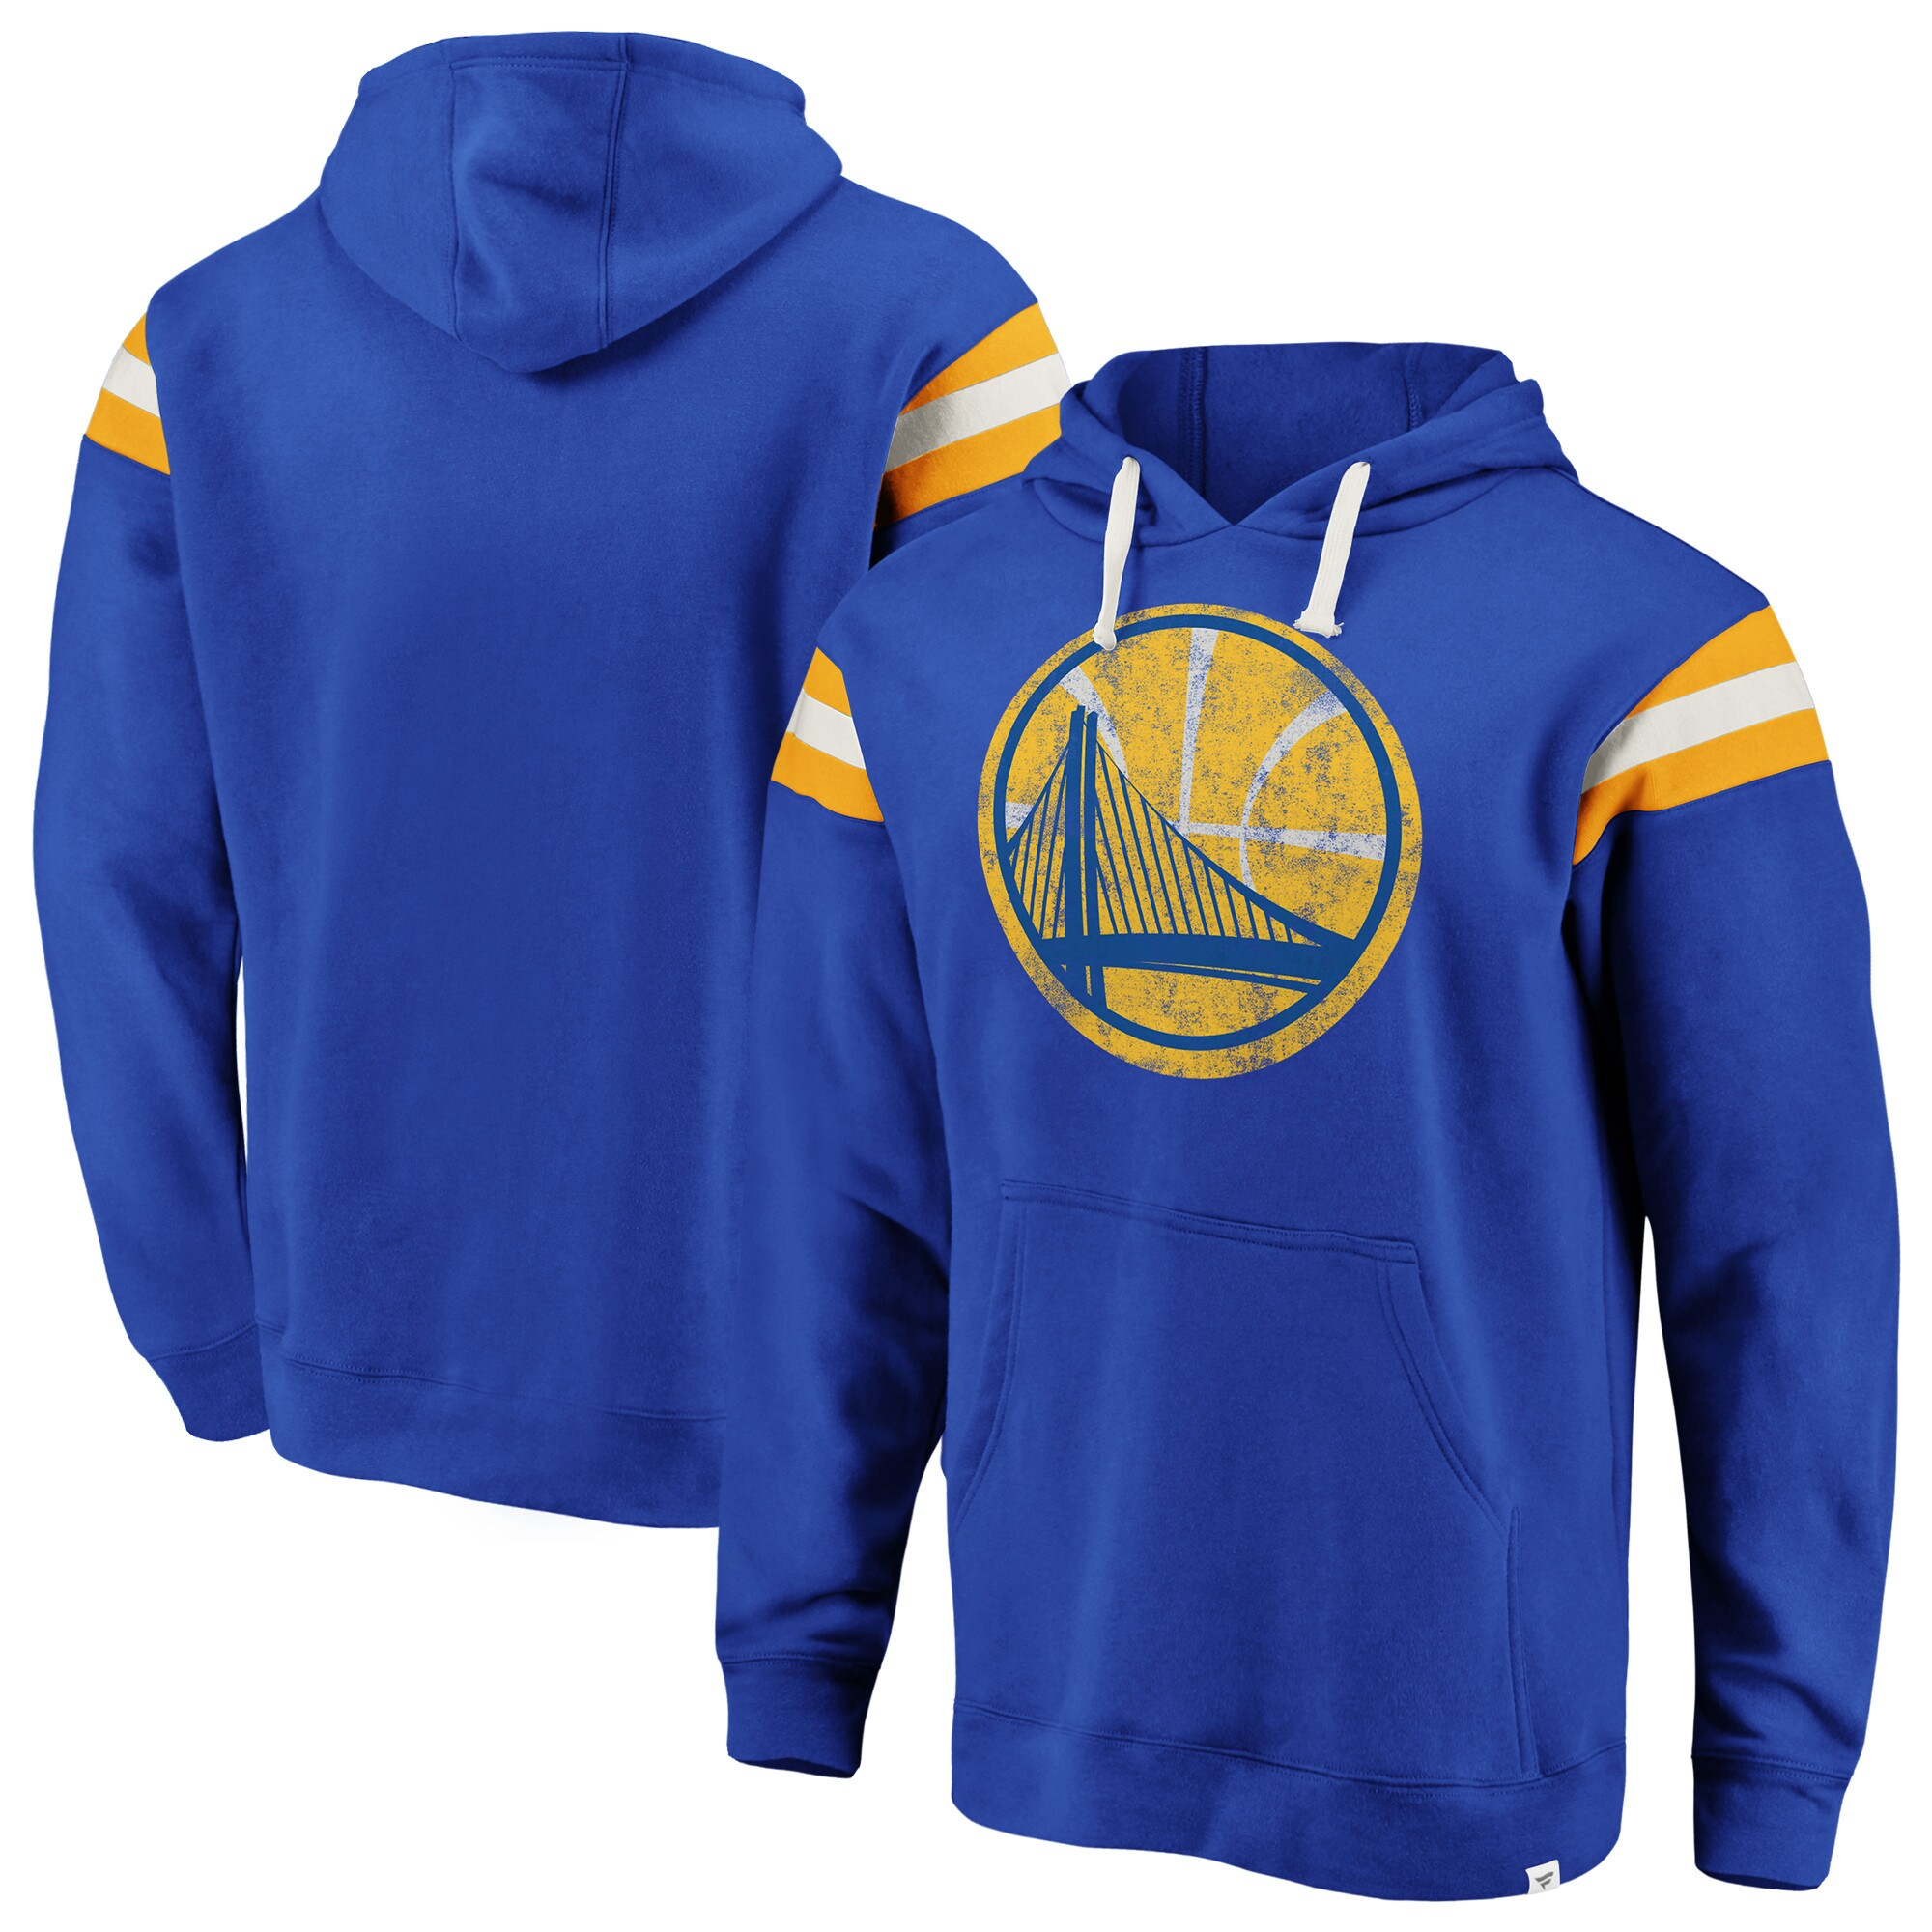 Golden State Warriors Fanatics Branded Big & Tall True Classic Vintage Retro Stripe Pullover Hoodie - Royal